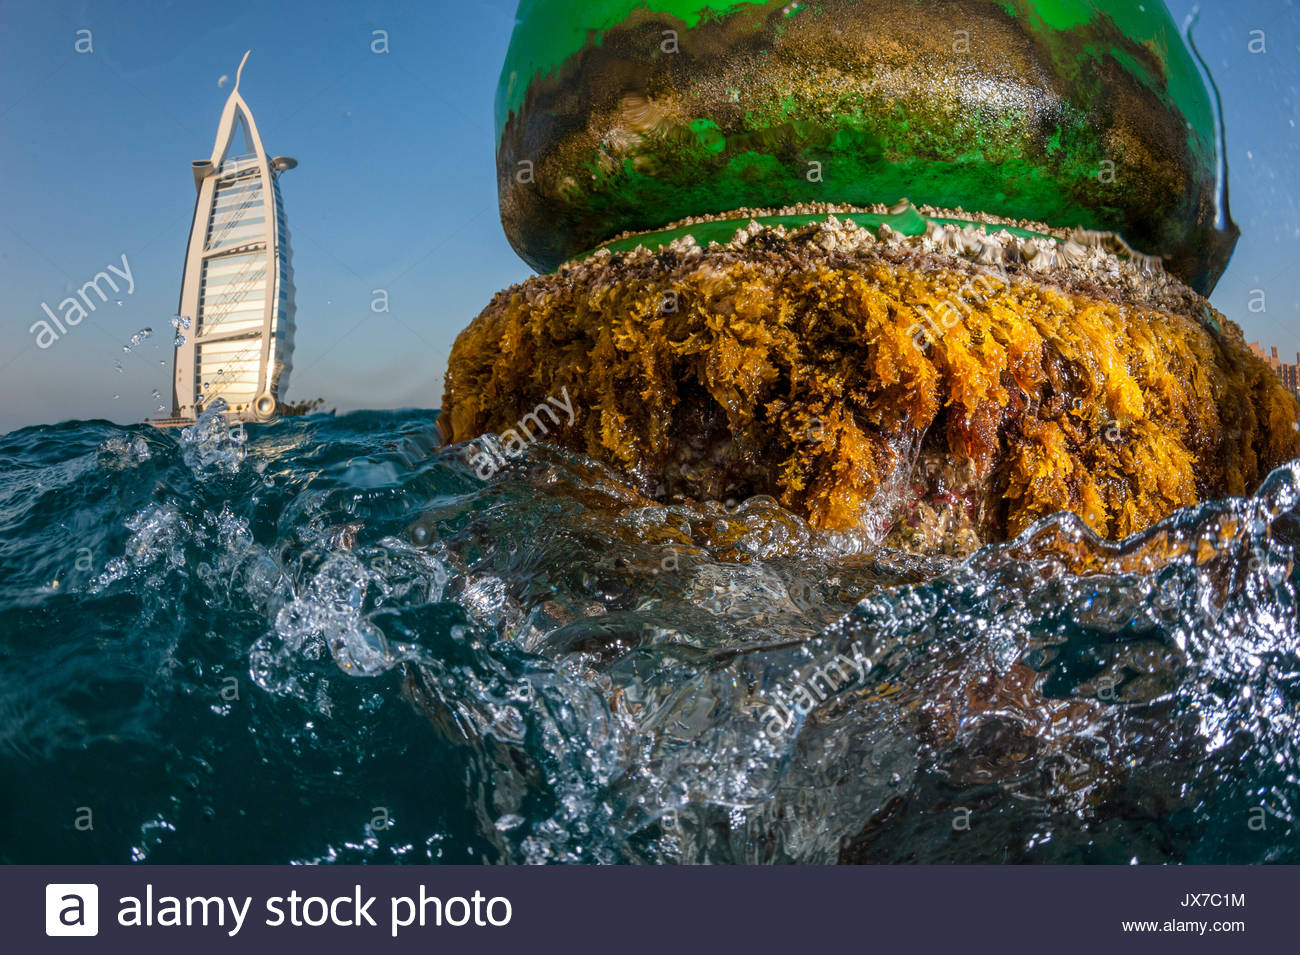 Seaweed on a mooring buoy in the Arabian Gulf. - Stock Image